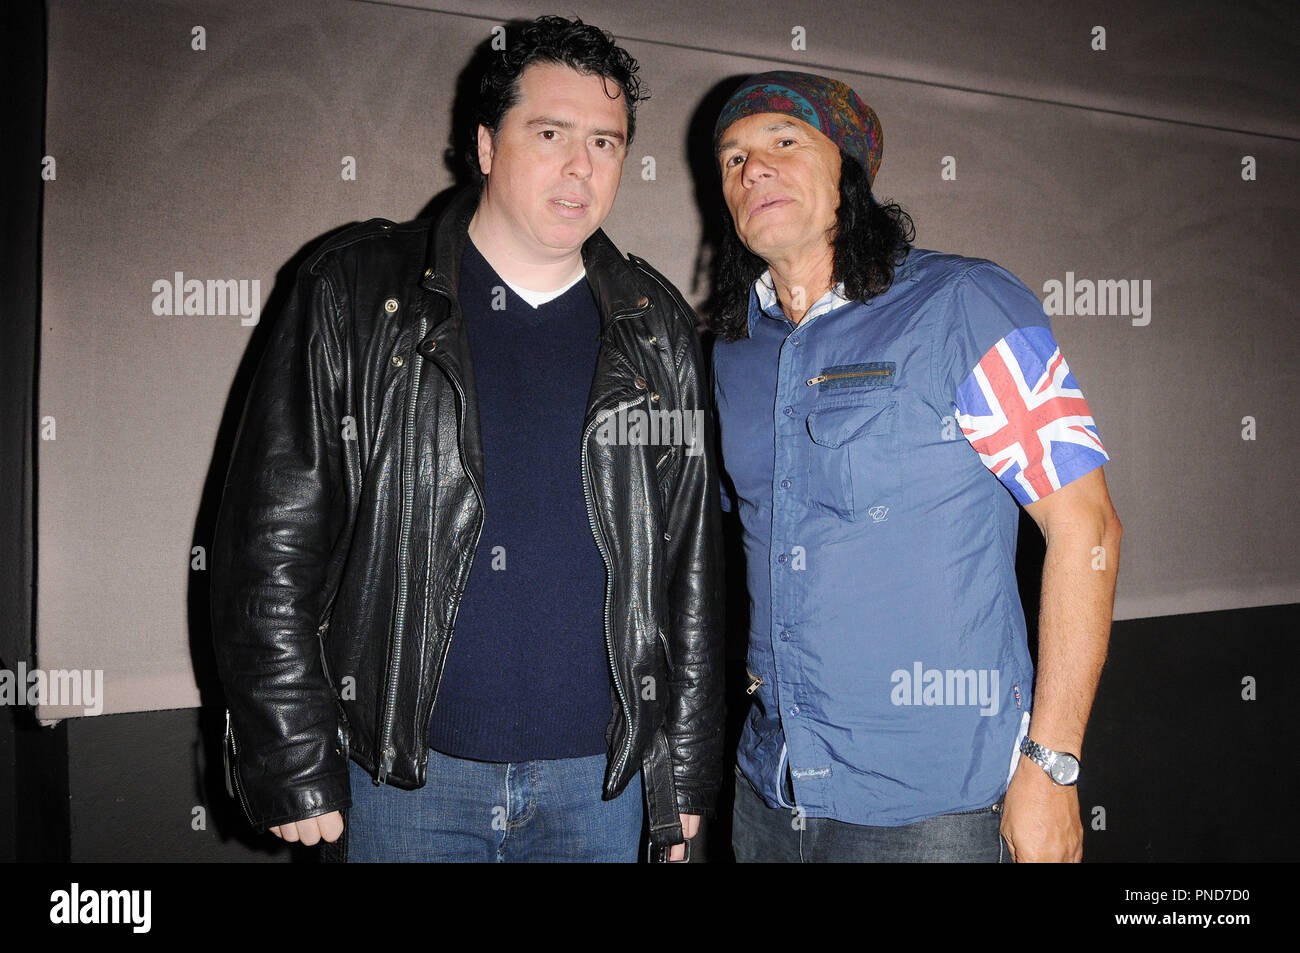 Sacha Gervasi and DJ Wayne Jobson of Indie 103.1 at the Q&A and Reception in celebration of the DVD release of 'Anvil The Story of Anvil' held at the WGA in Beverly Hills, CA on Thursday, October 8, 2009. Photo by Richard Soria/ PRPP /PictureLux File Reference # GervasiJobson02_10809PRPP  For Editorial Use Only -  All Rights Reserved - Stock Image